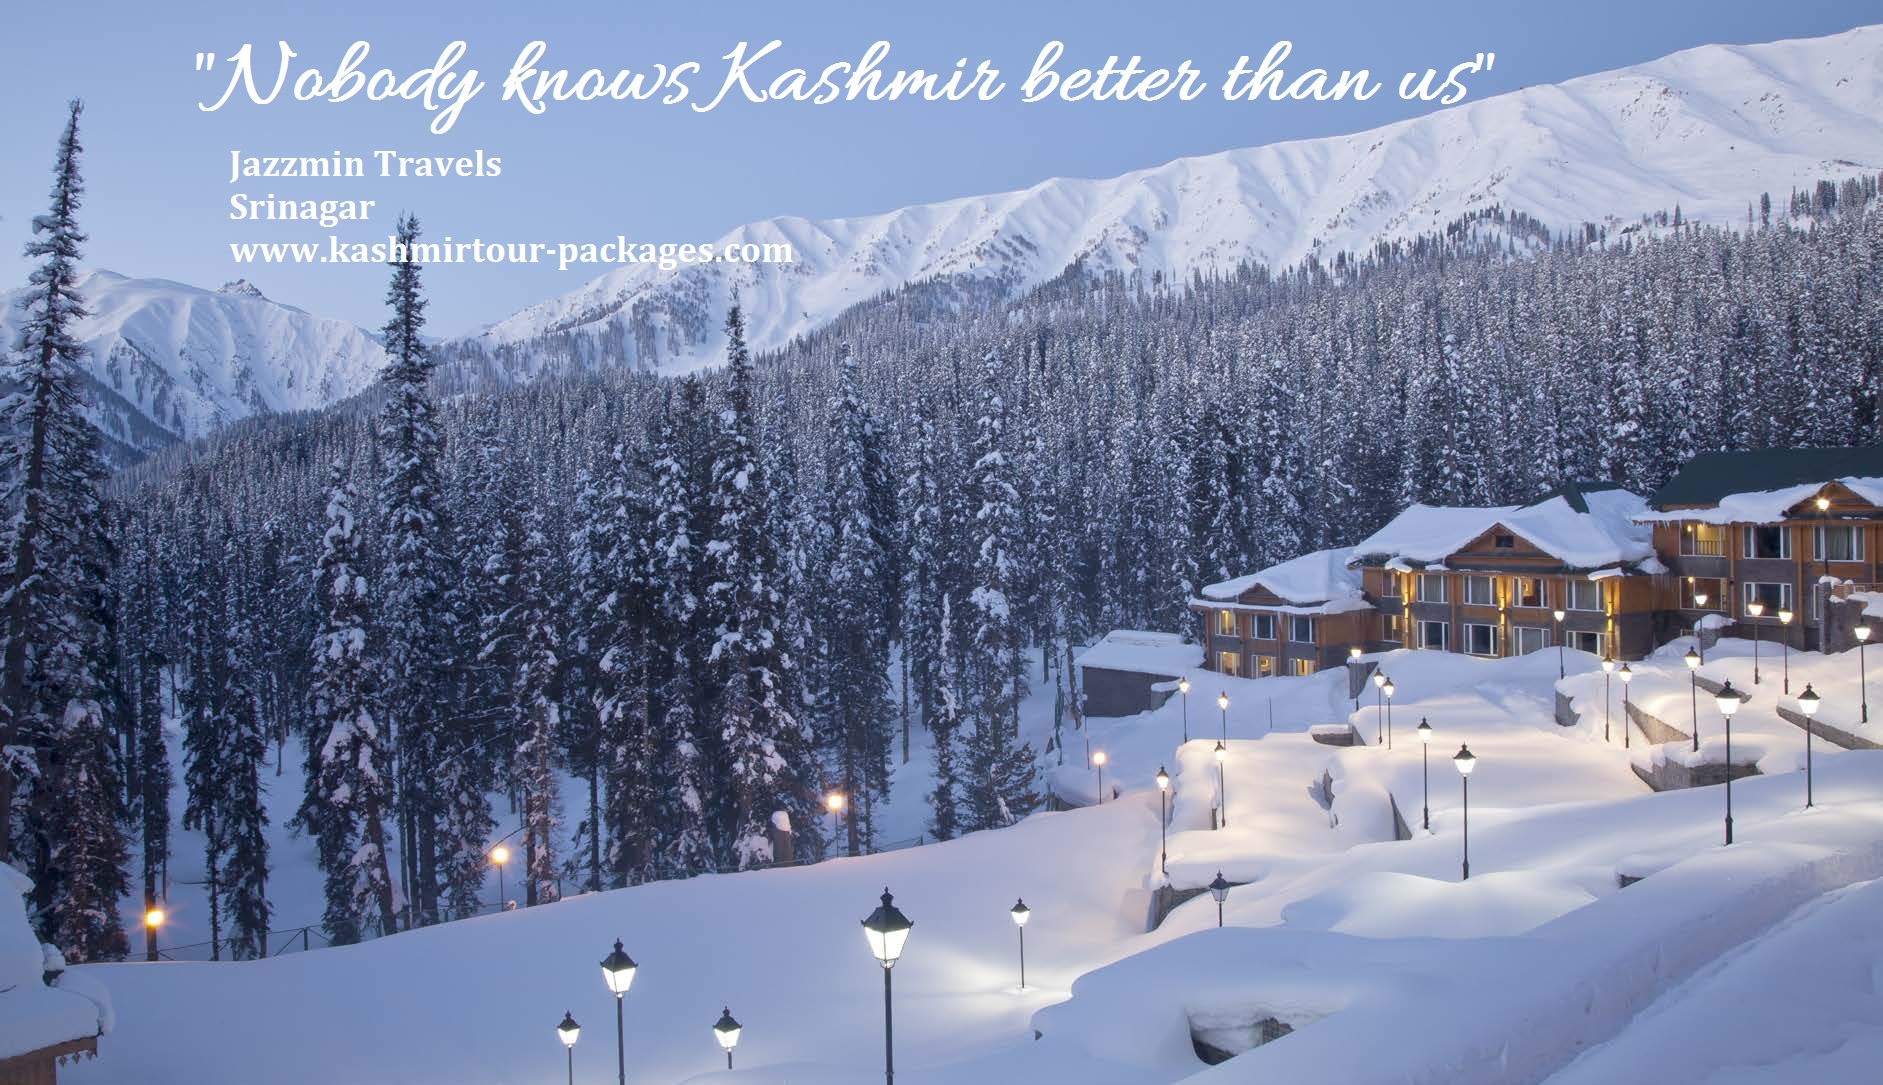 Kashmir Tour Packages 31 - www.kashmirtour-packages.com